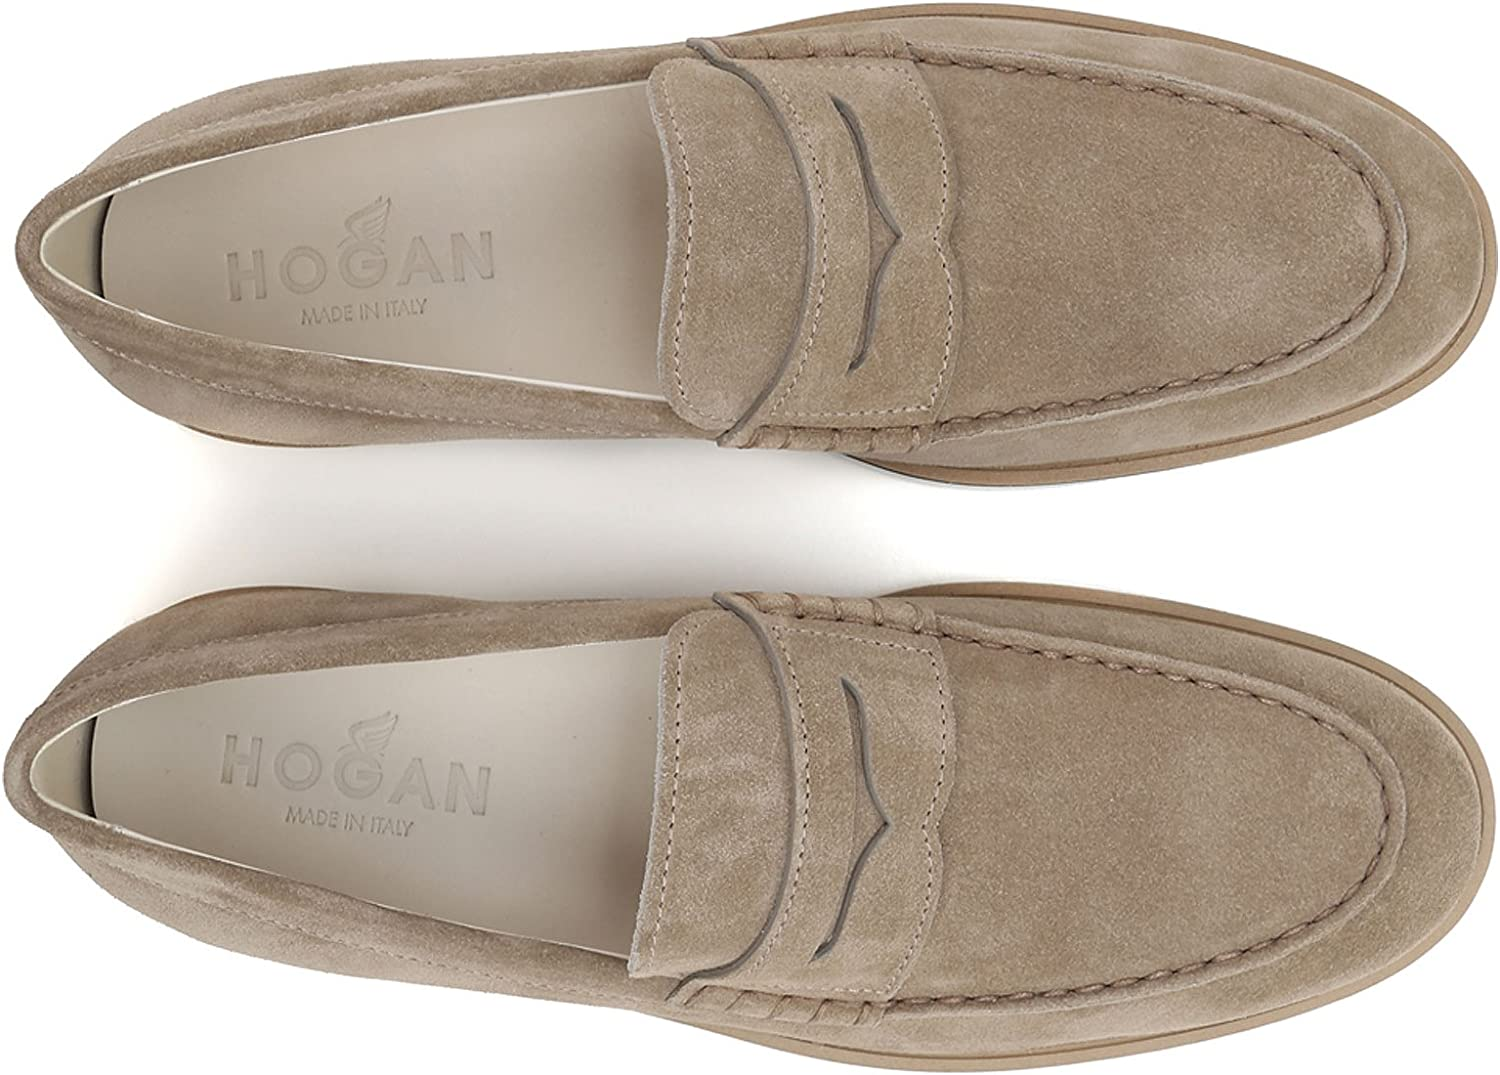 Hogan Mens Beige Suede Leather Loafers Shoes Size 7.5 US